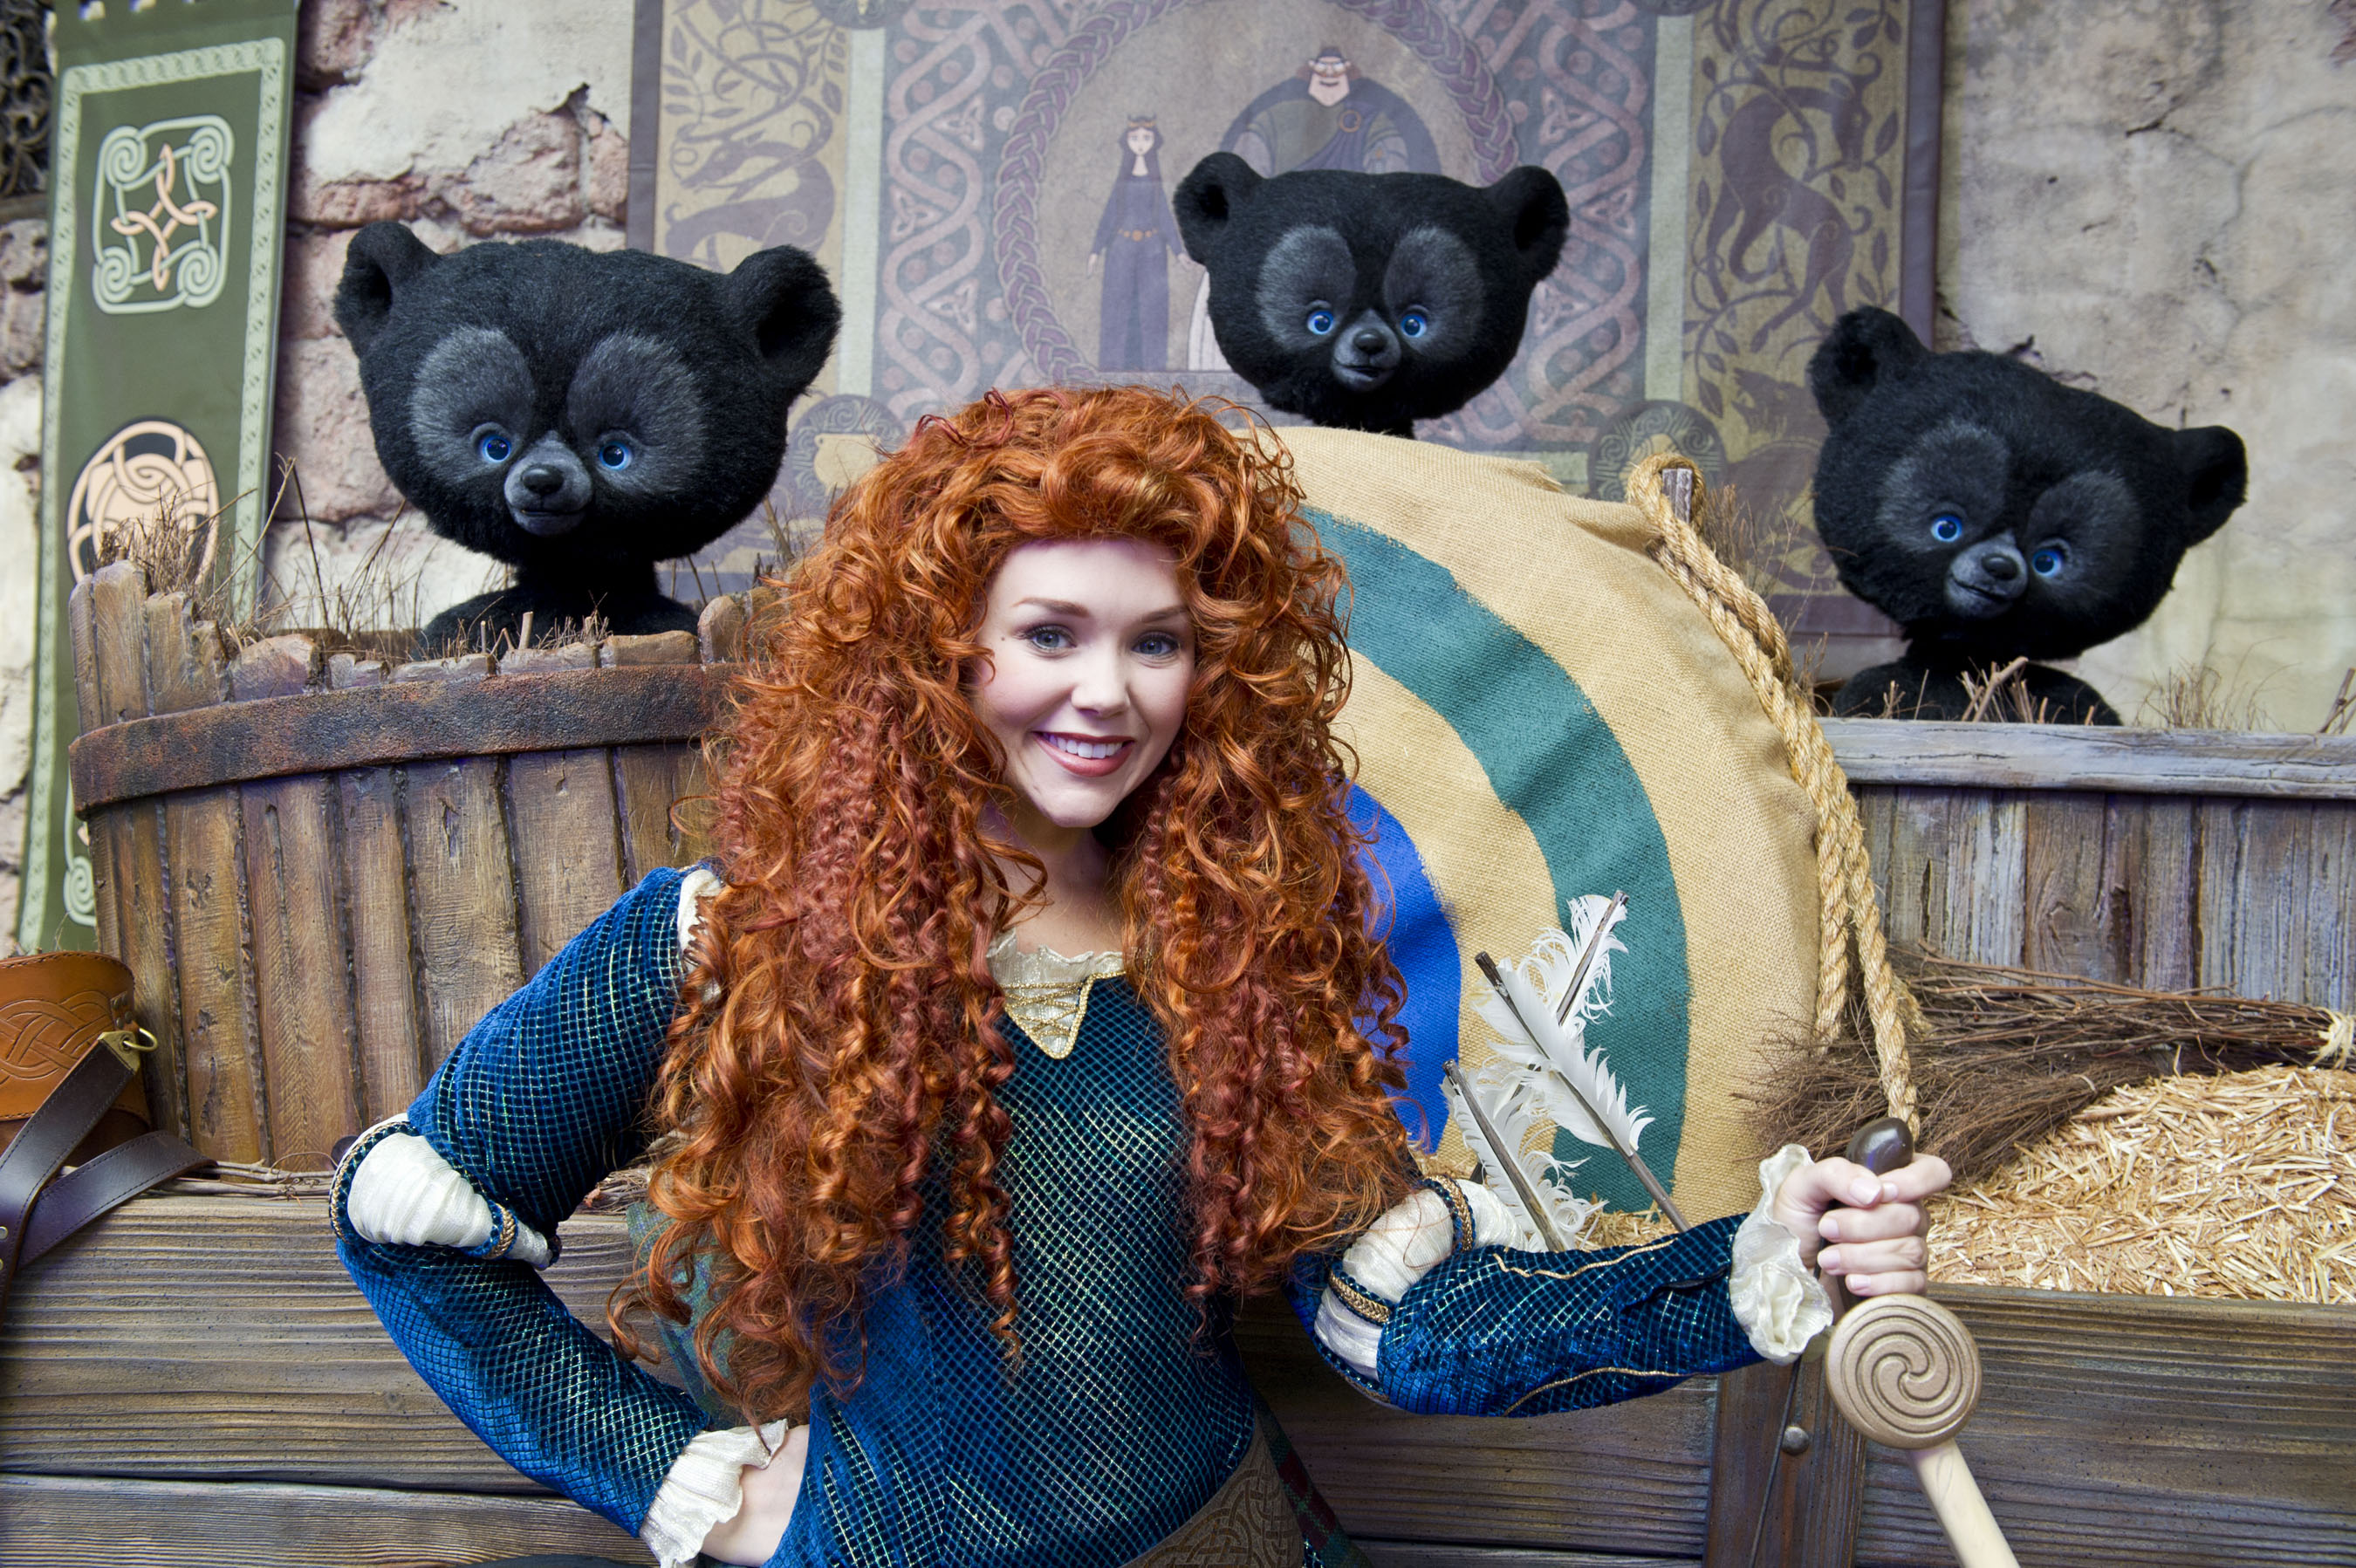 Where to Meet all the Walt Disney World Princesses, a guide featured by top US Disney blogger, Marcie and the Mouse: Guests can meet Merida at Walt Disney World